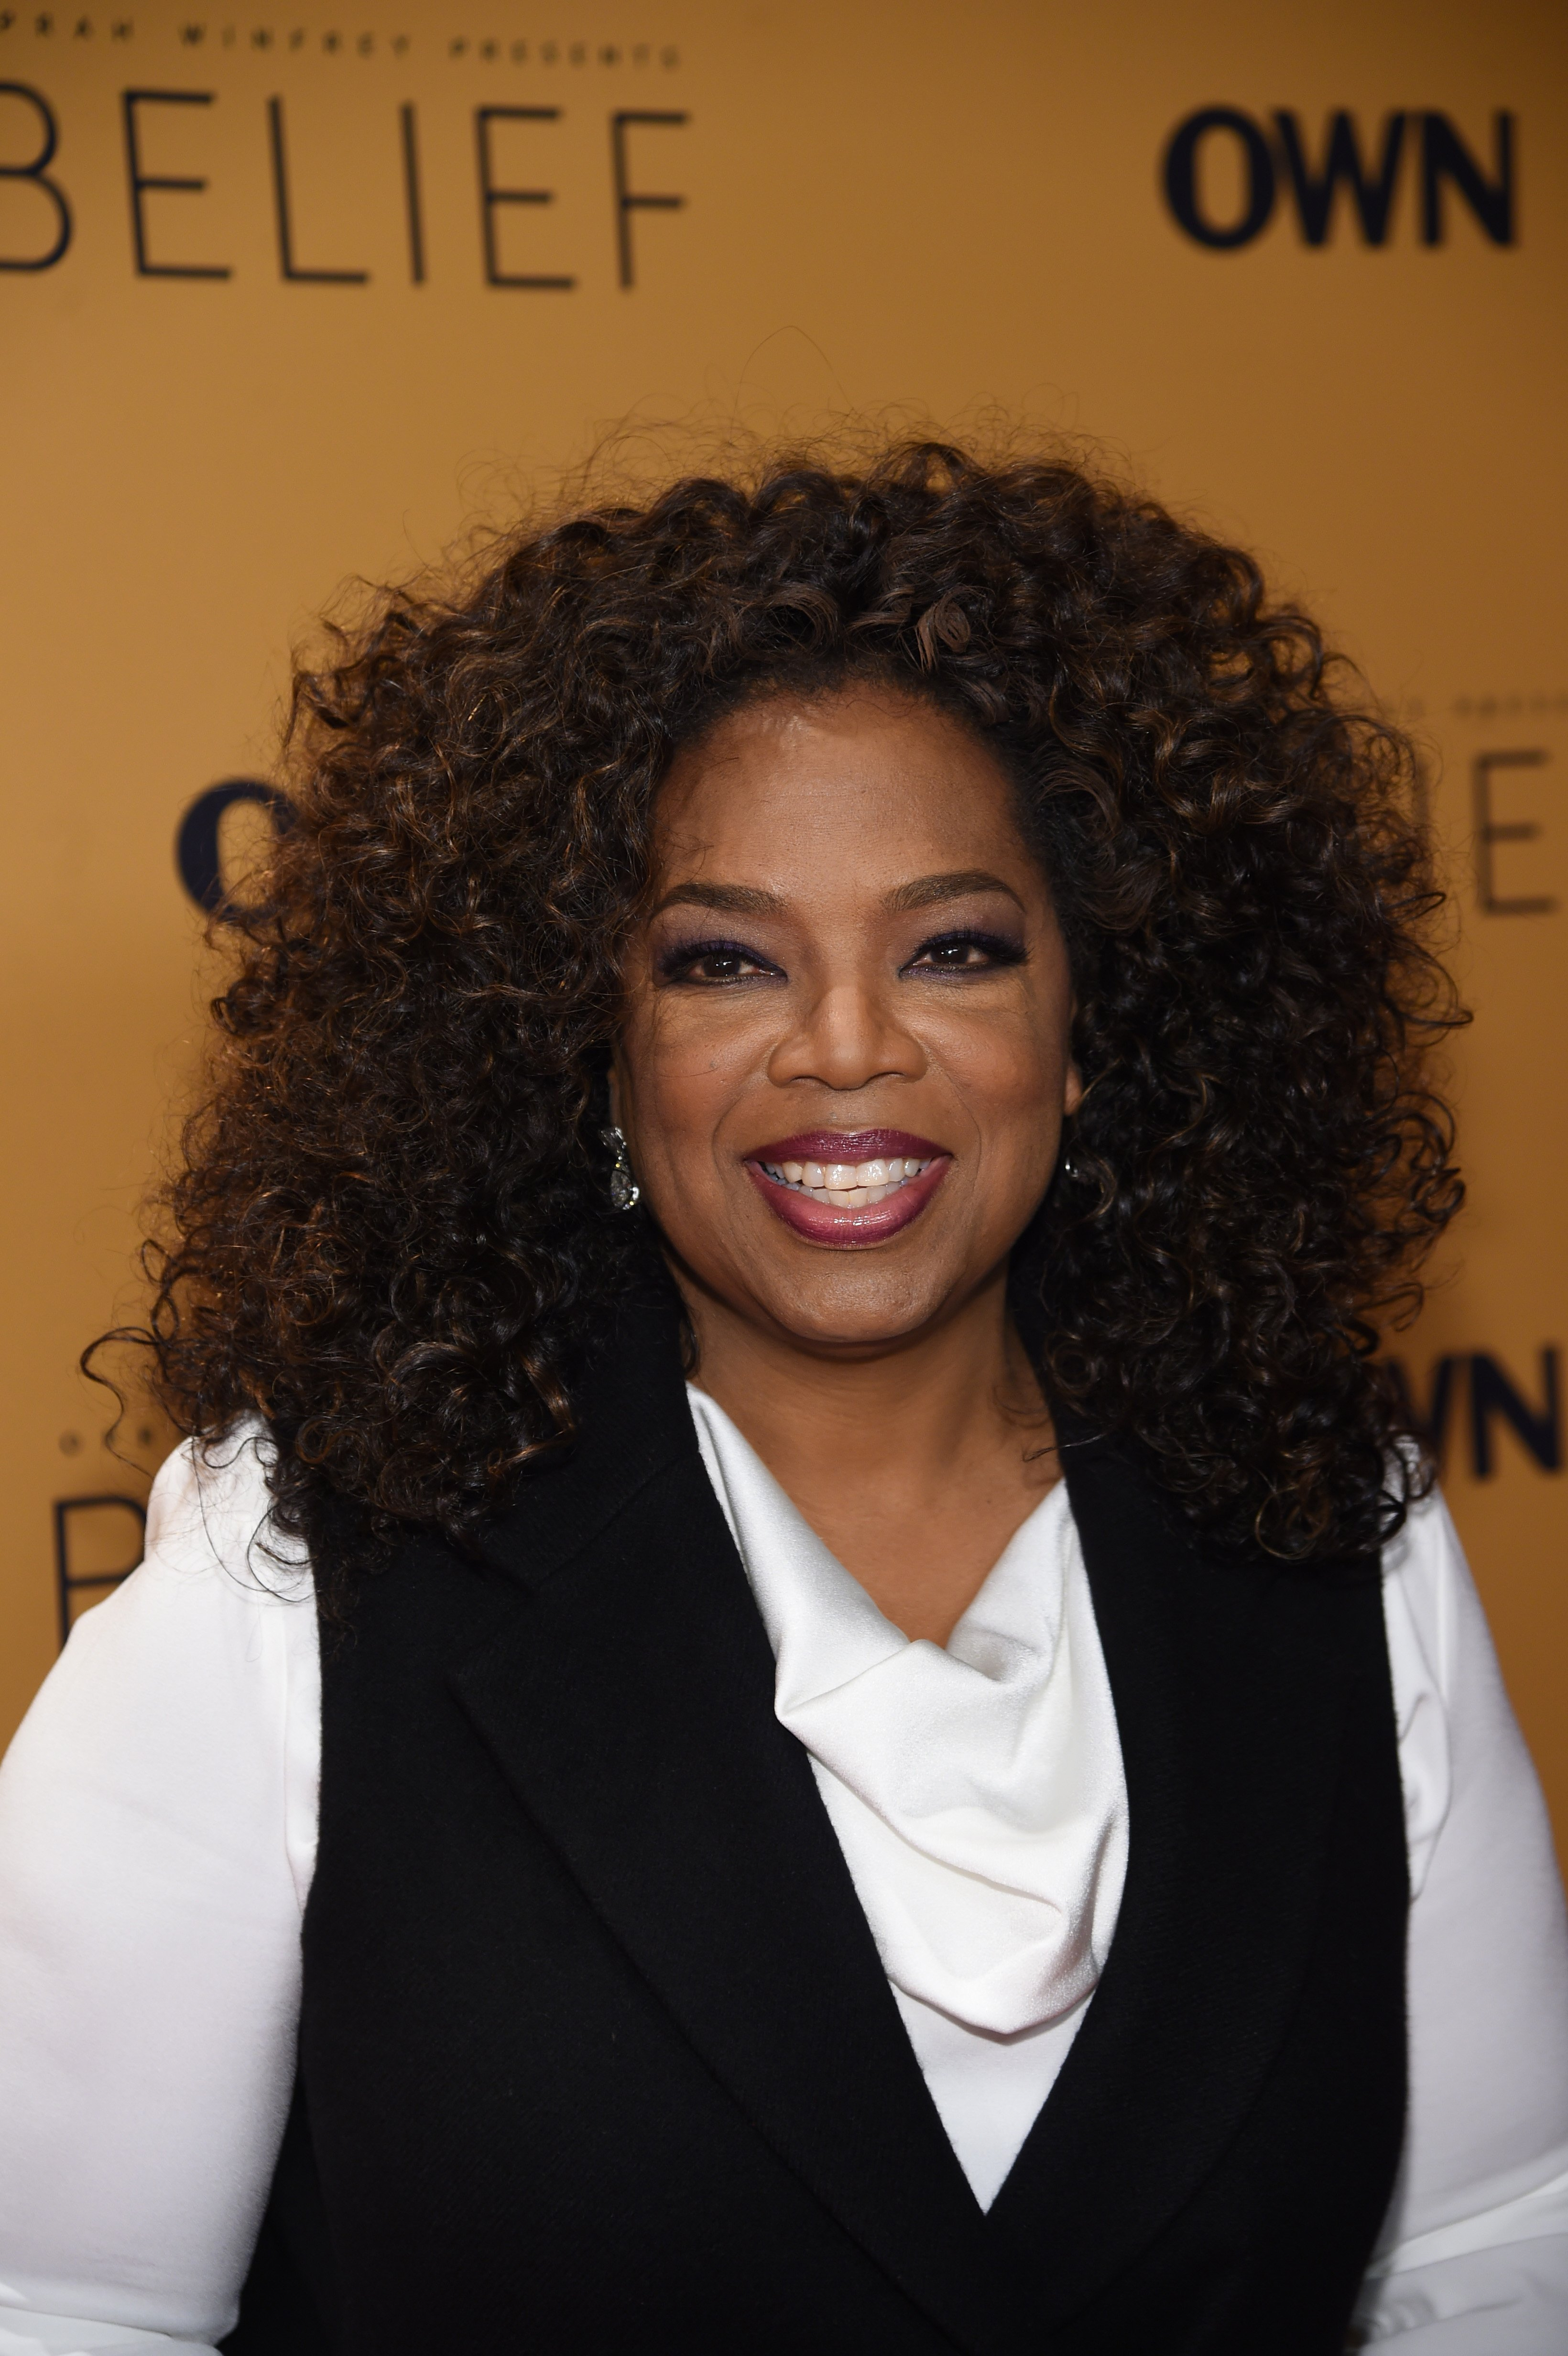 """Oprah Winfrey at the """"Belief"""" New York premiere on Oct. 14, 2015 in New York City 